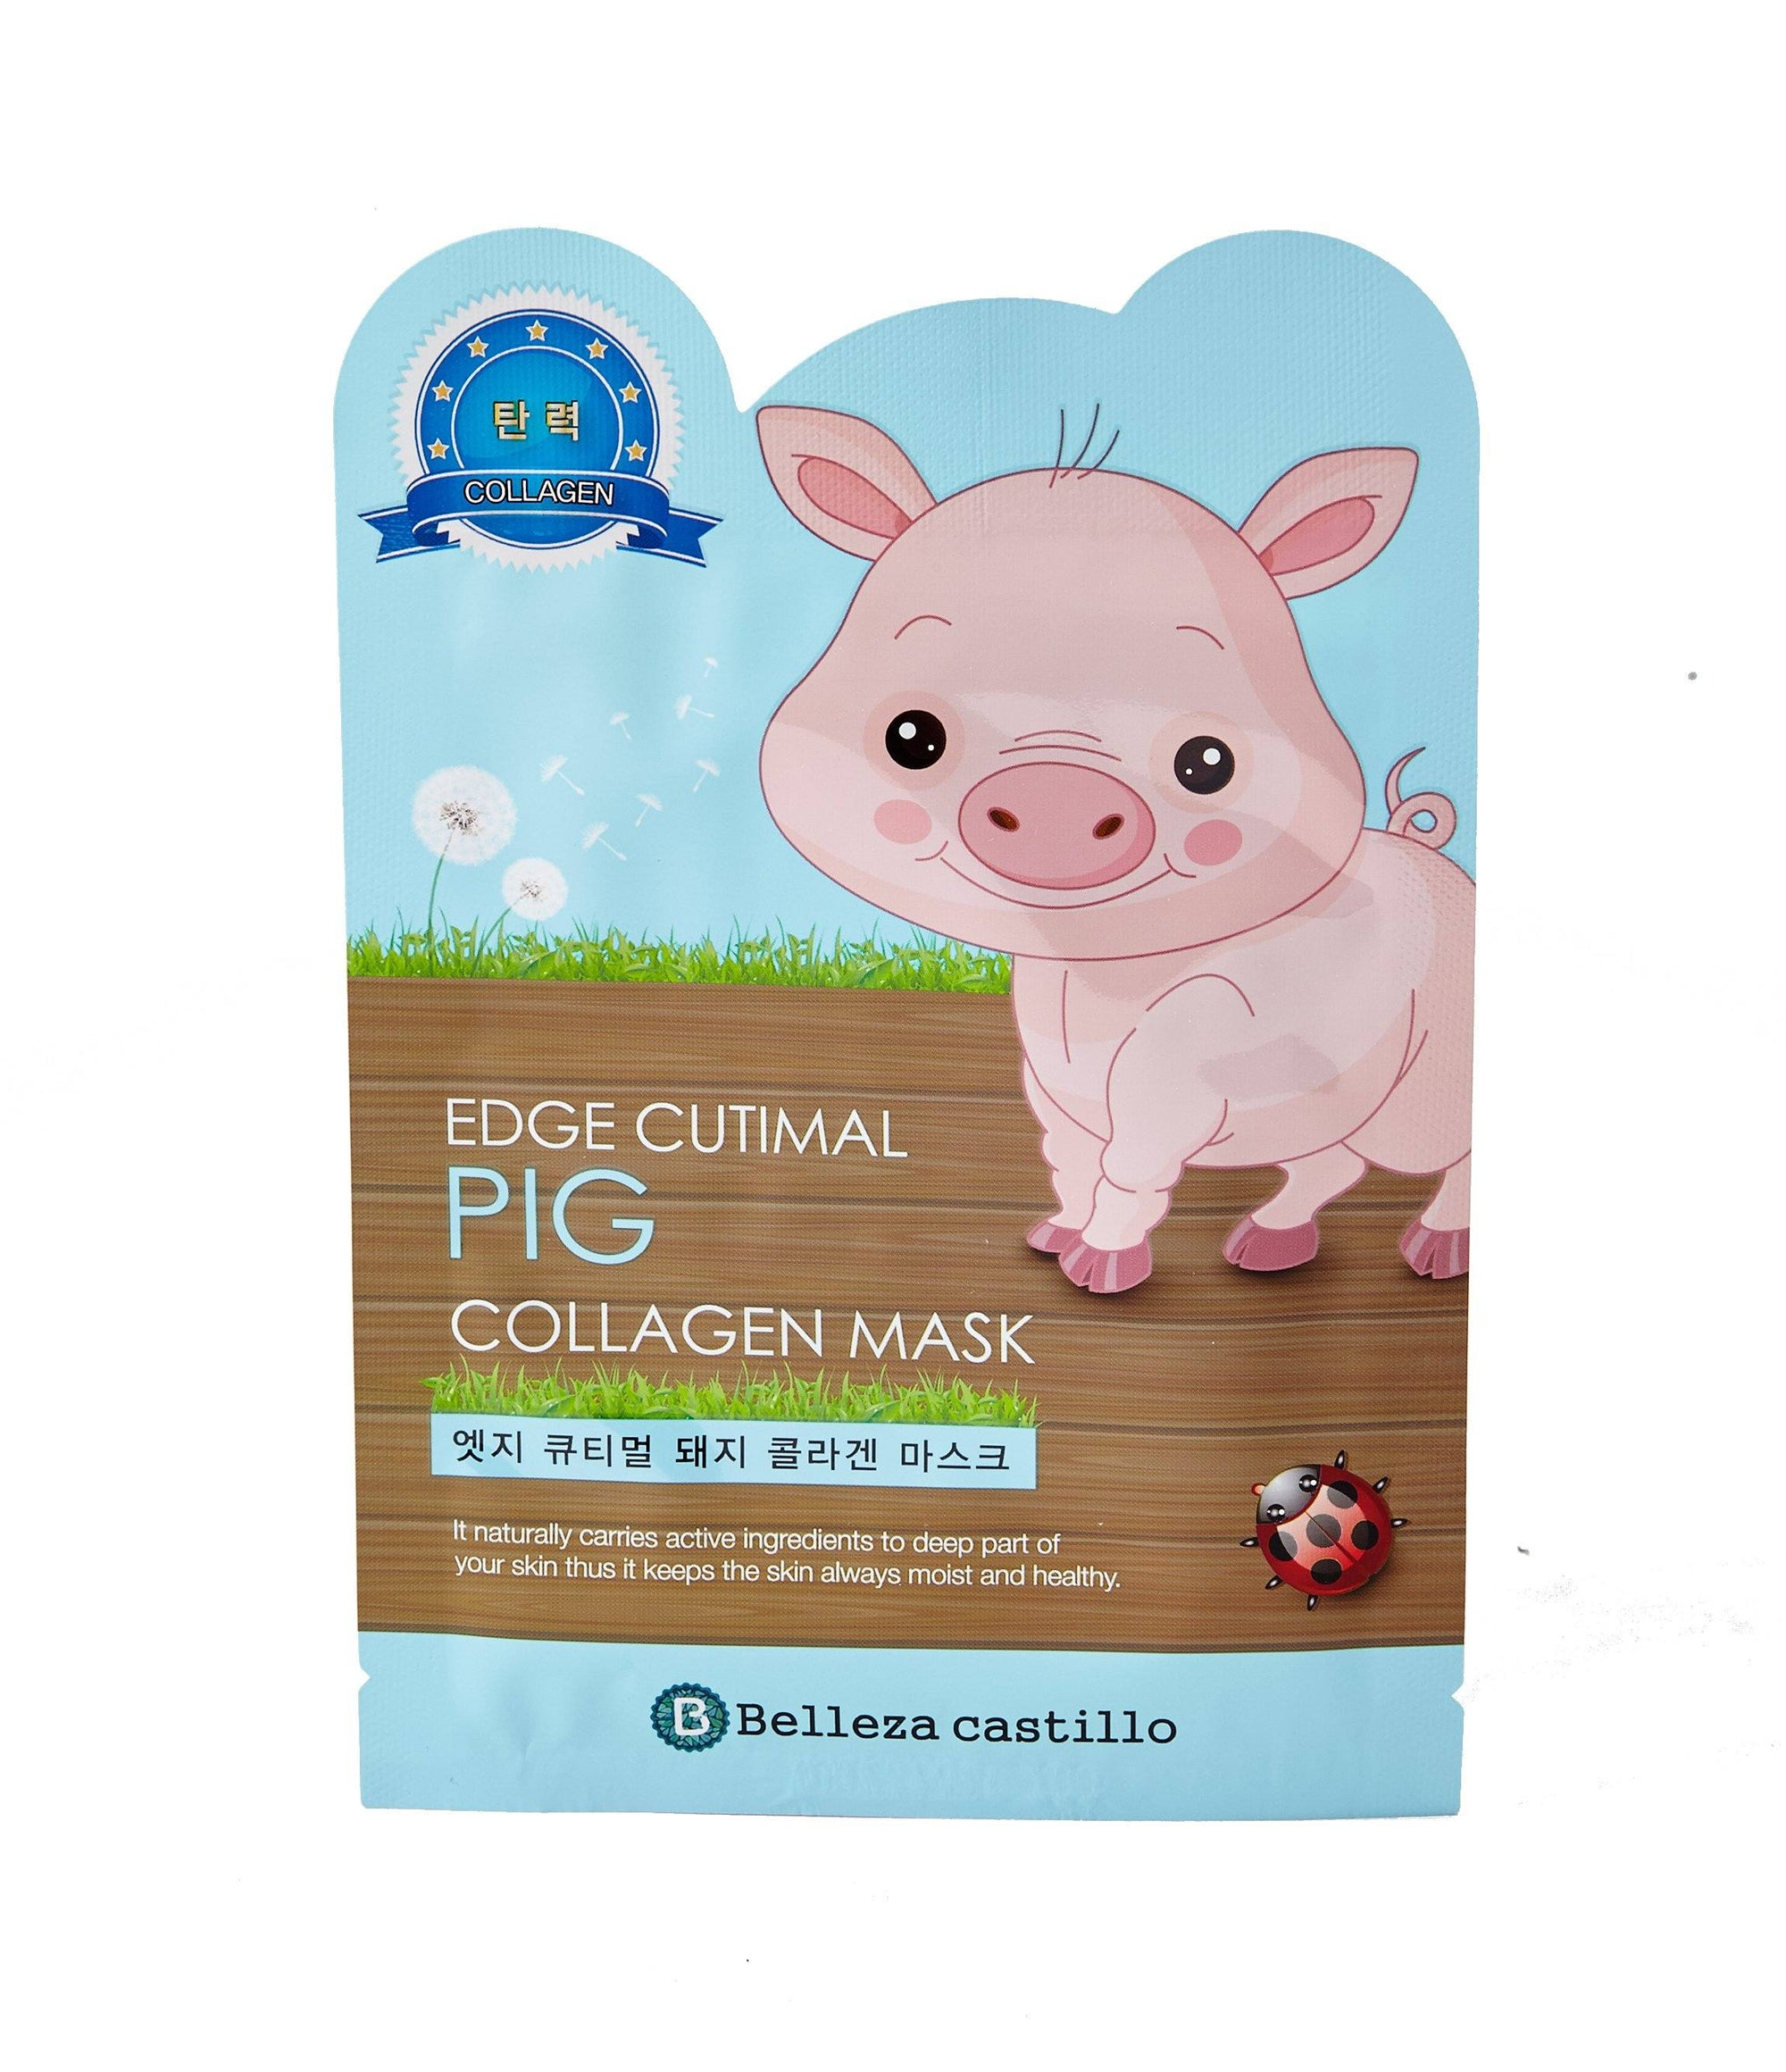 Health & Beauty > Personal Care > Cosmetics > Skin Care > Compressed Skin Care Mask Sheets - Edge Cutimal PIG Collagen Mask Maska W Płachcie